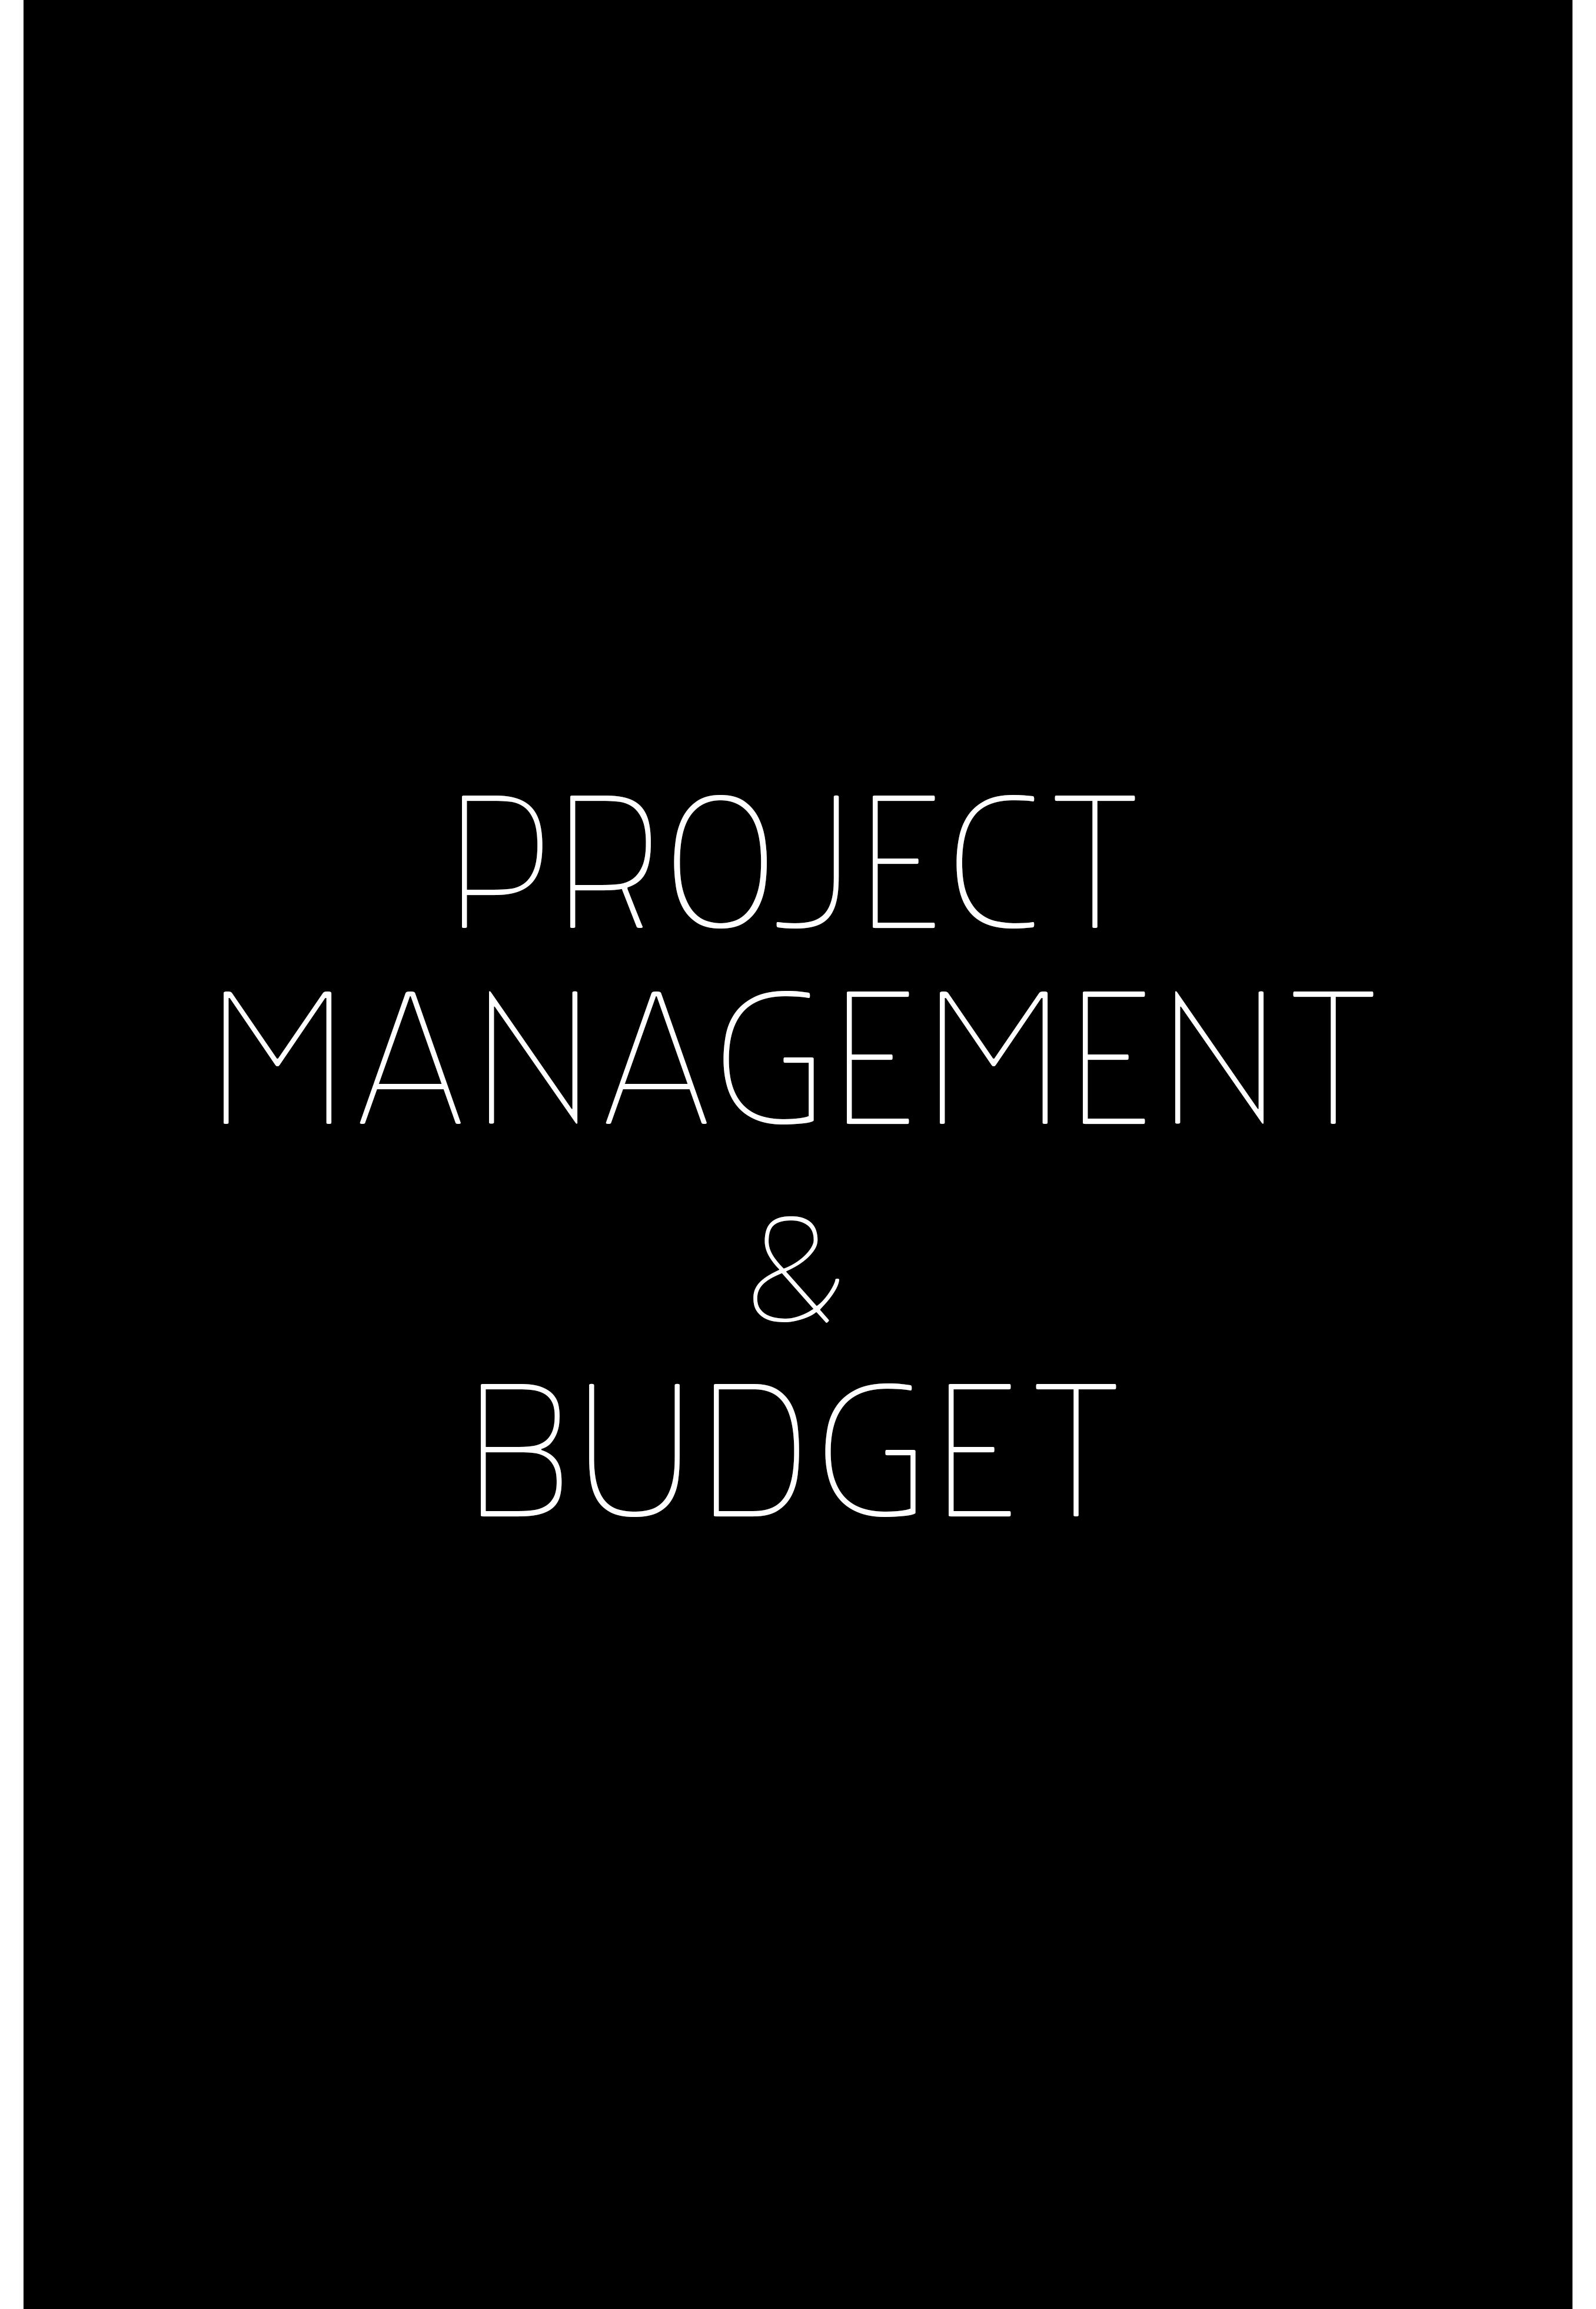 PROJECT MANAGEMENT & BUDGET